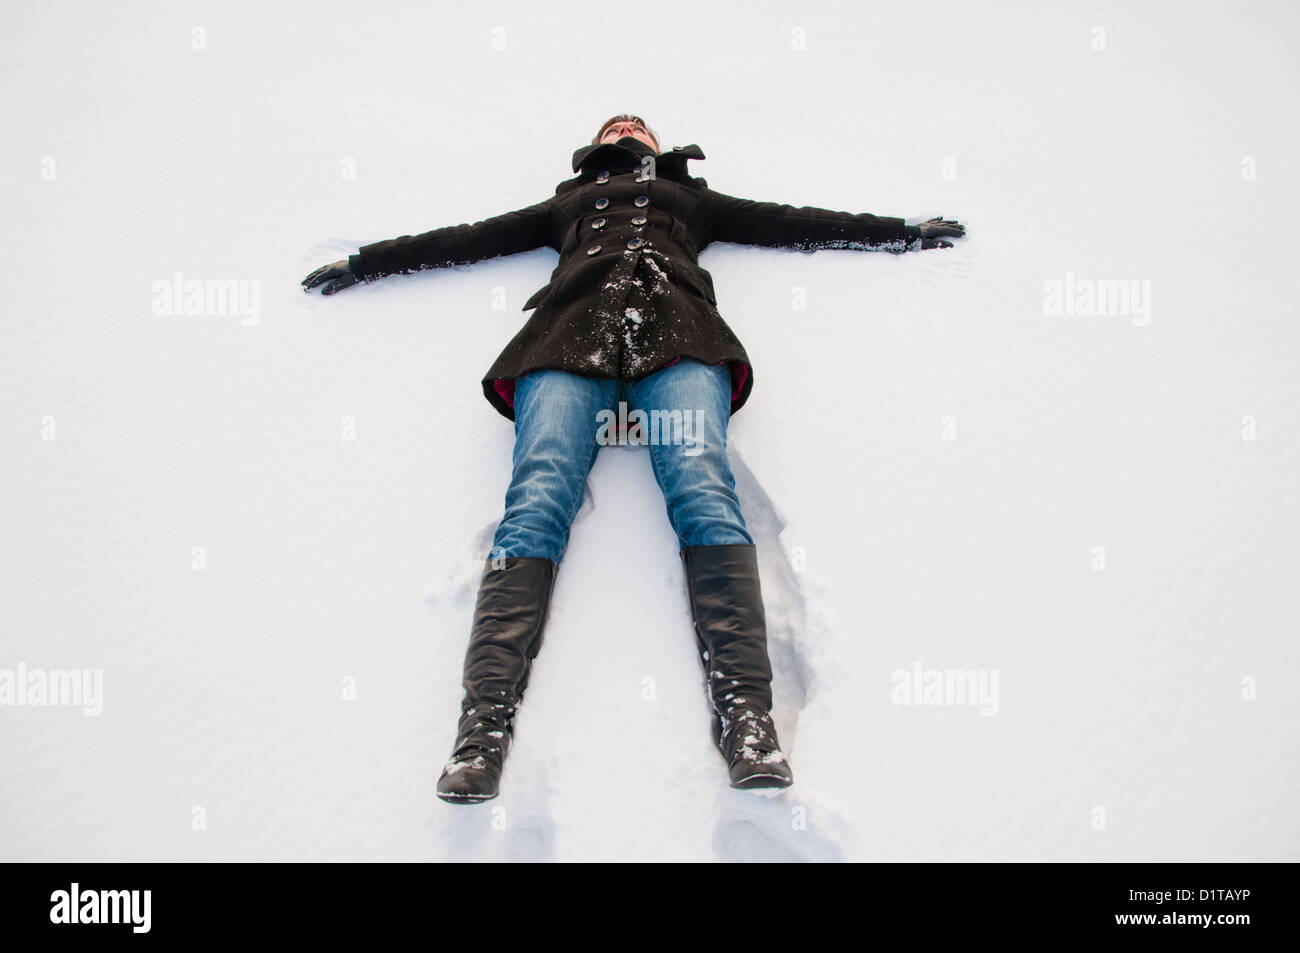 An image of girl lying at groung in winter - Stock Image